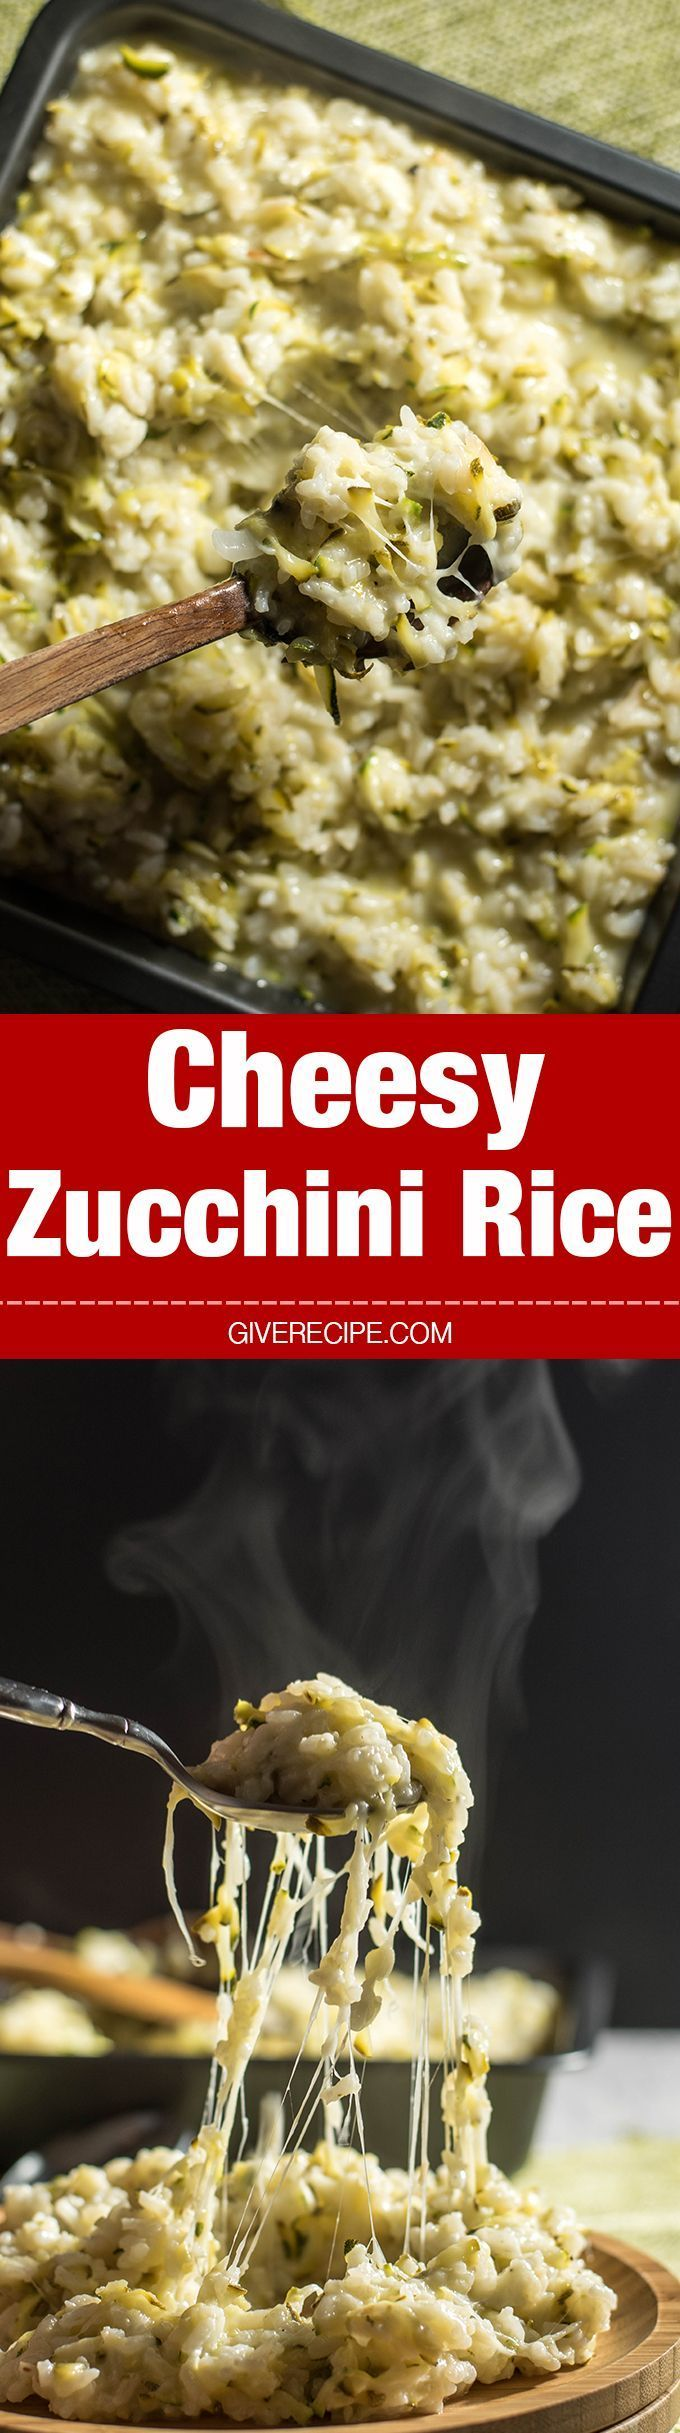 Cheesy Zucchini Rice will be the most favorite side of your family in summer. Despite all the zucchini inside! 100% guaranteed! - http://giverecipe.com